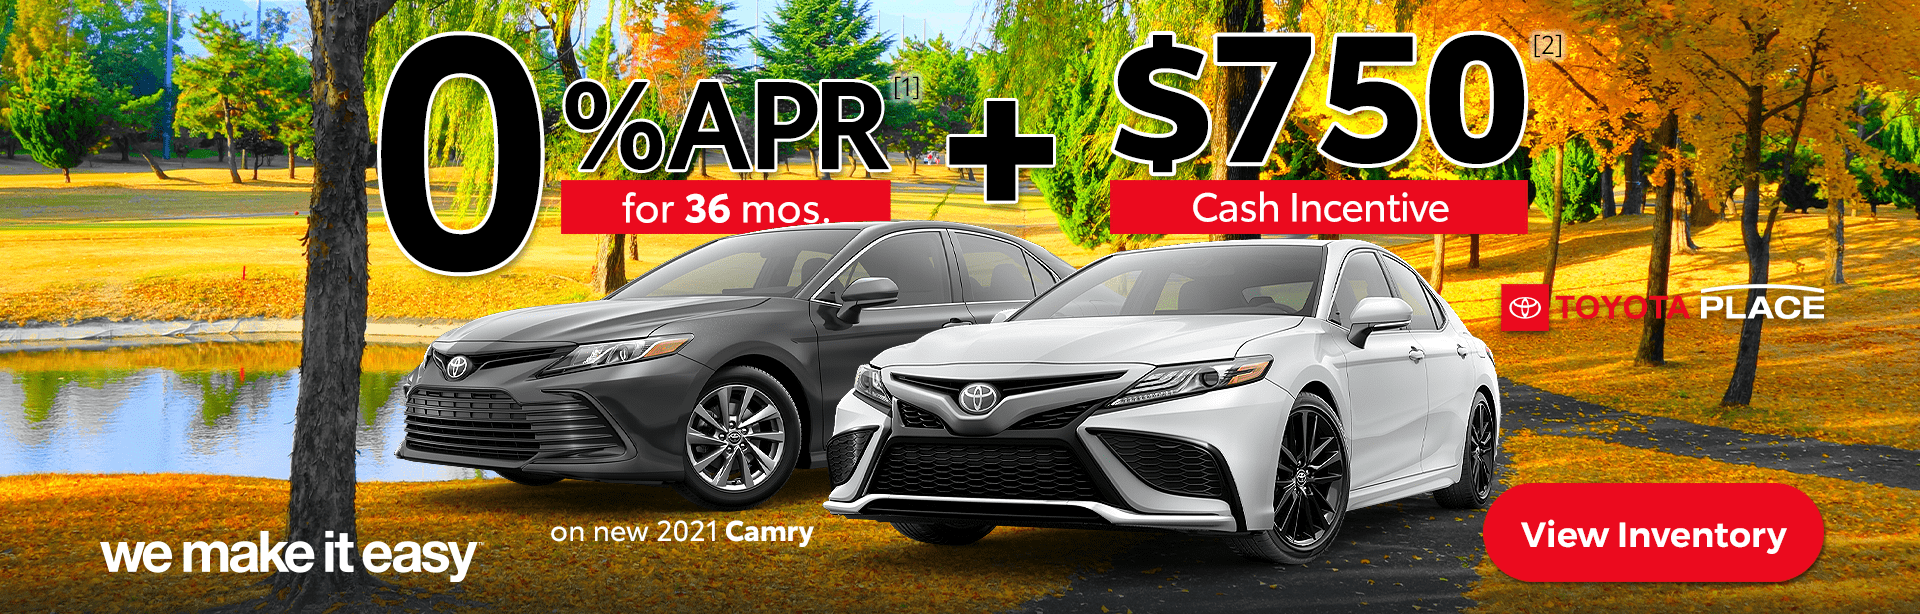 We_Make_it_Easy_Toyota_Place_2021_Camry